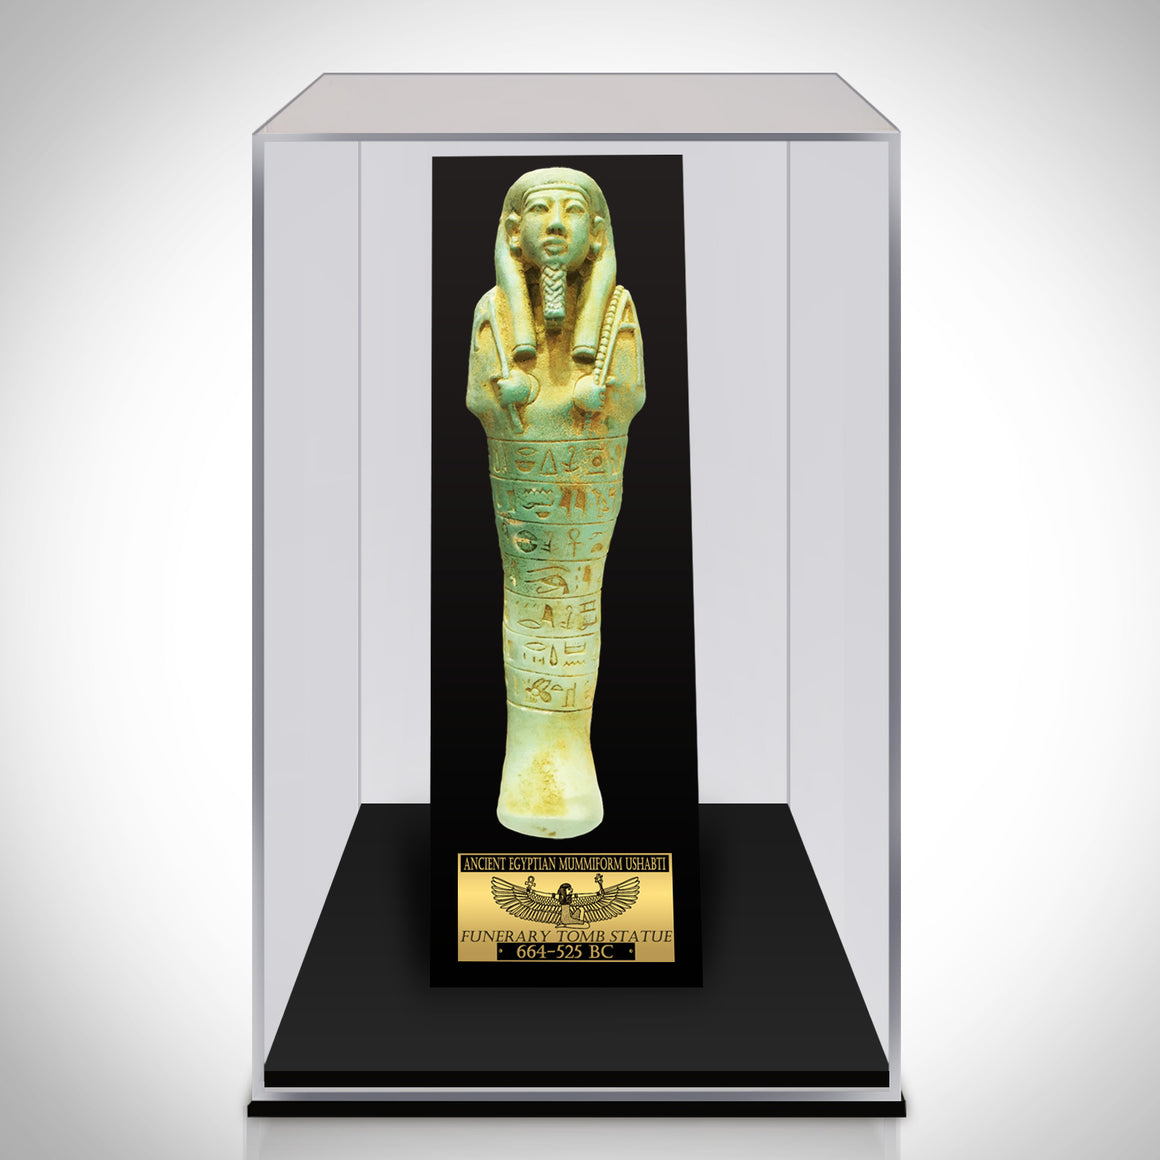 Authentic XL USHABTI TOMB STATUE From 664-525BC Displayed in a Rare-T Exclusive Custom Museum Display